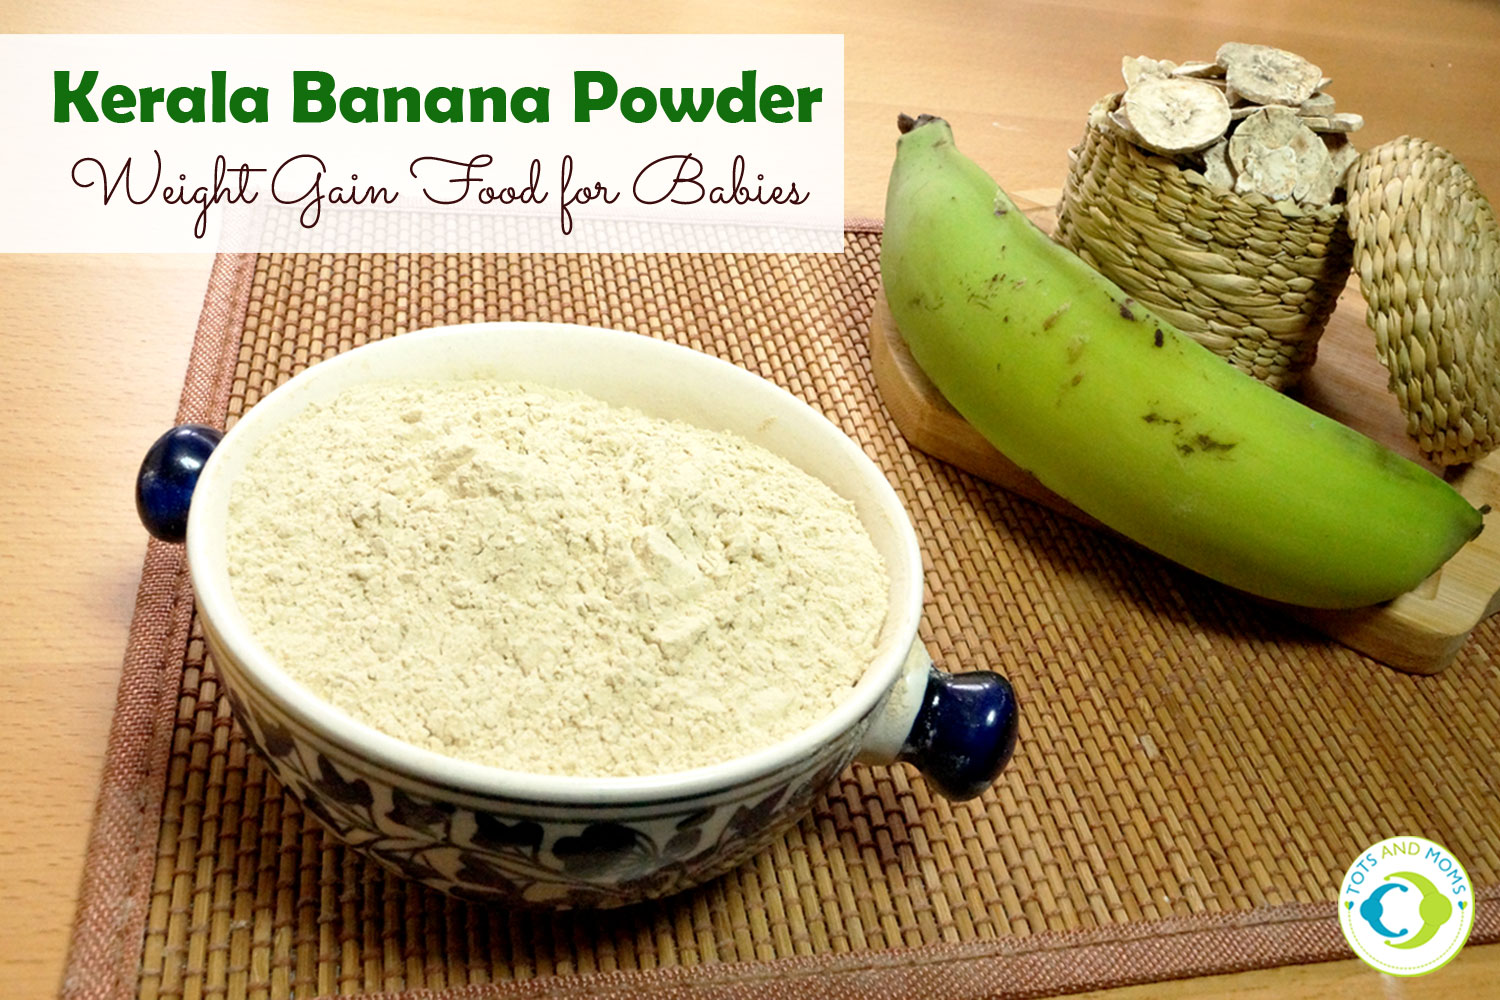 First food for babies, Raw kerala banana powder, healthy weight gain for babies, breakfast or snack time food doe toddlers